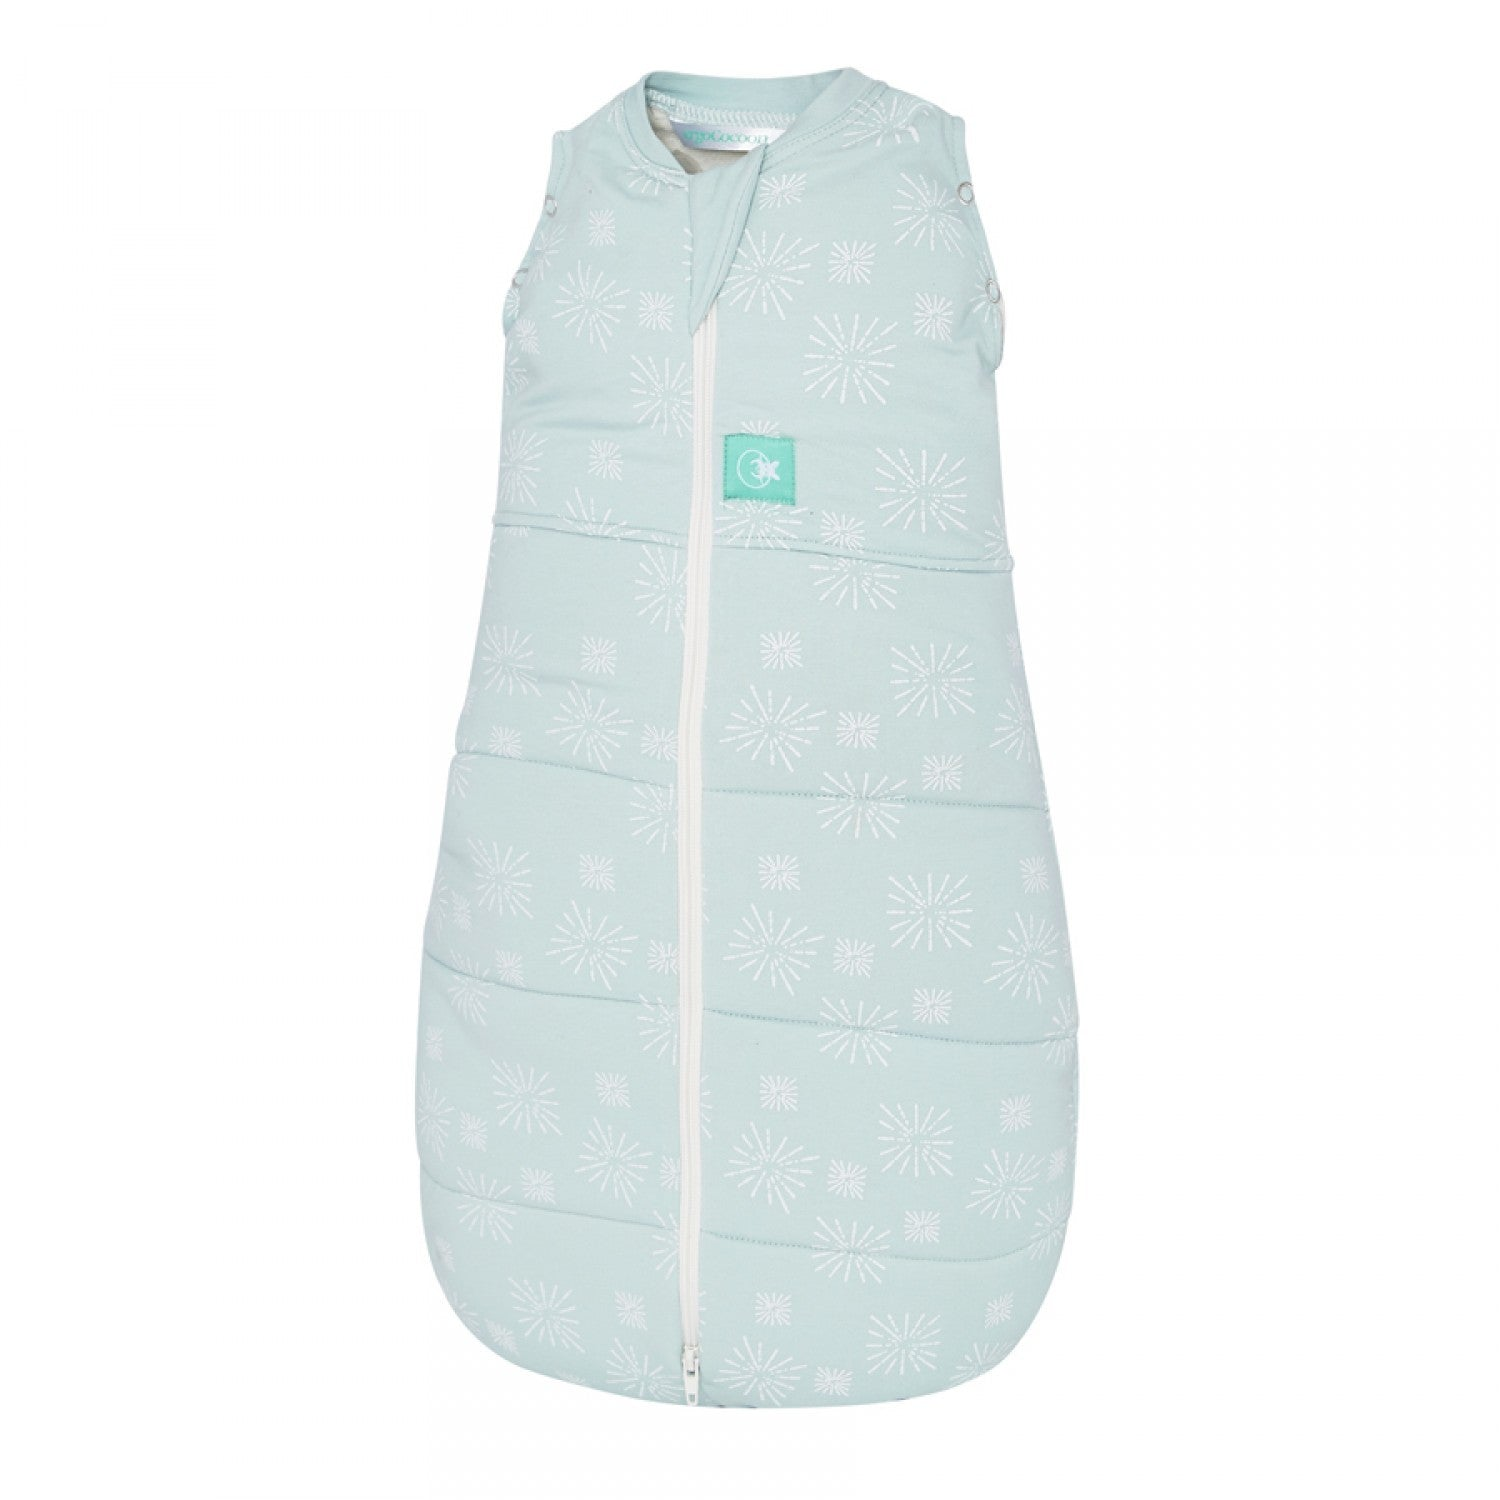 ergoCocoon Winter Swaddle and Sleep Bag (2.5 tog) - Mint Star